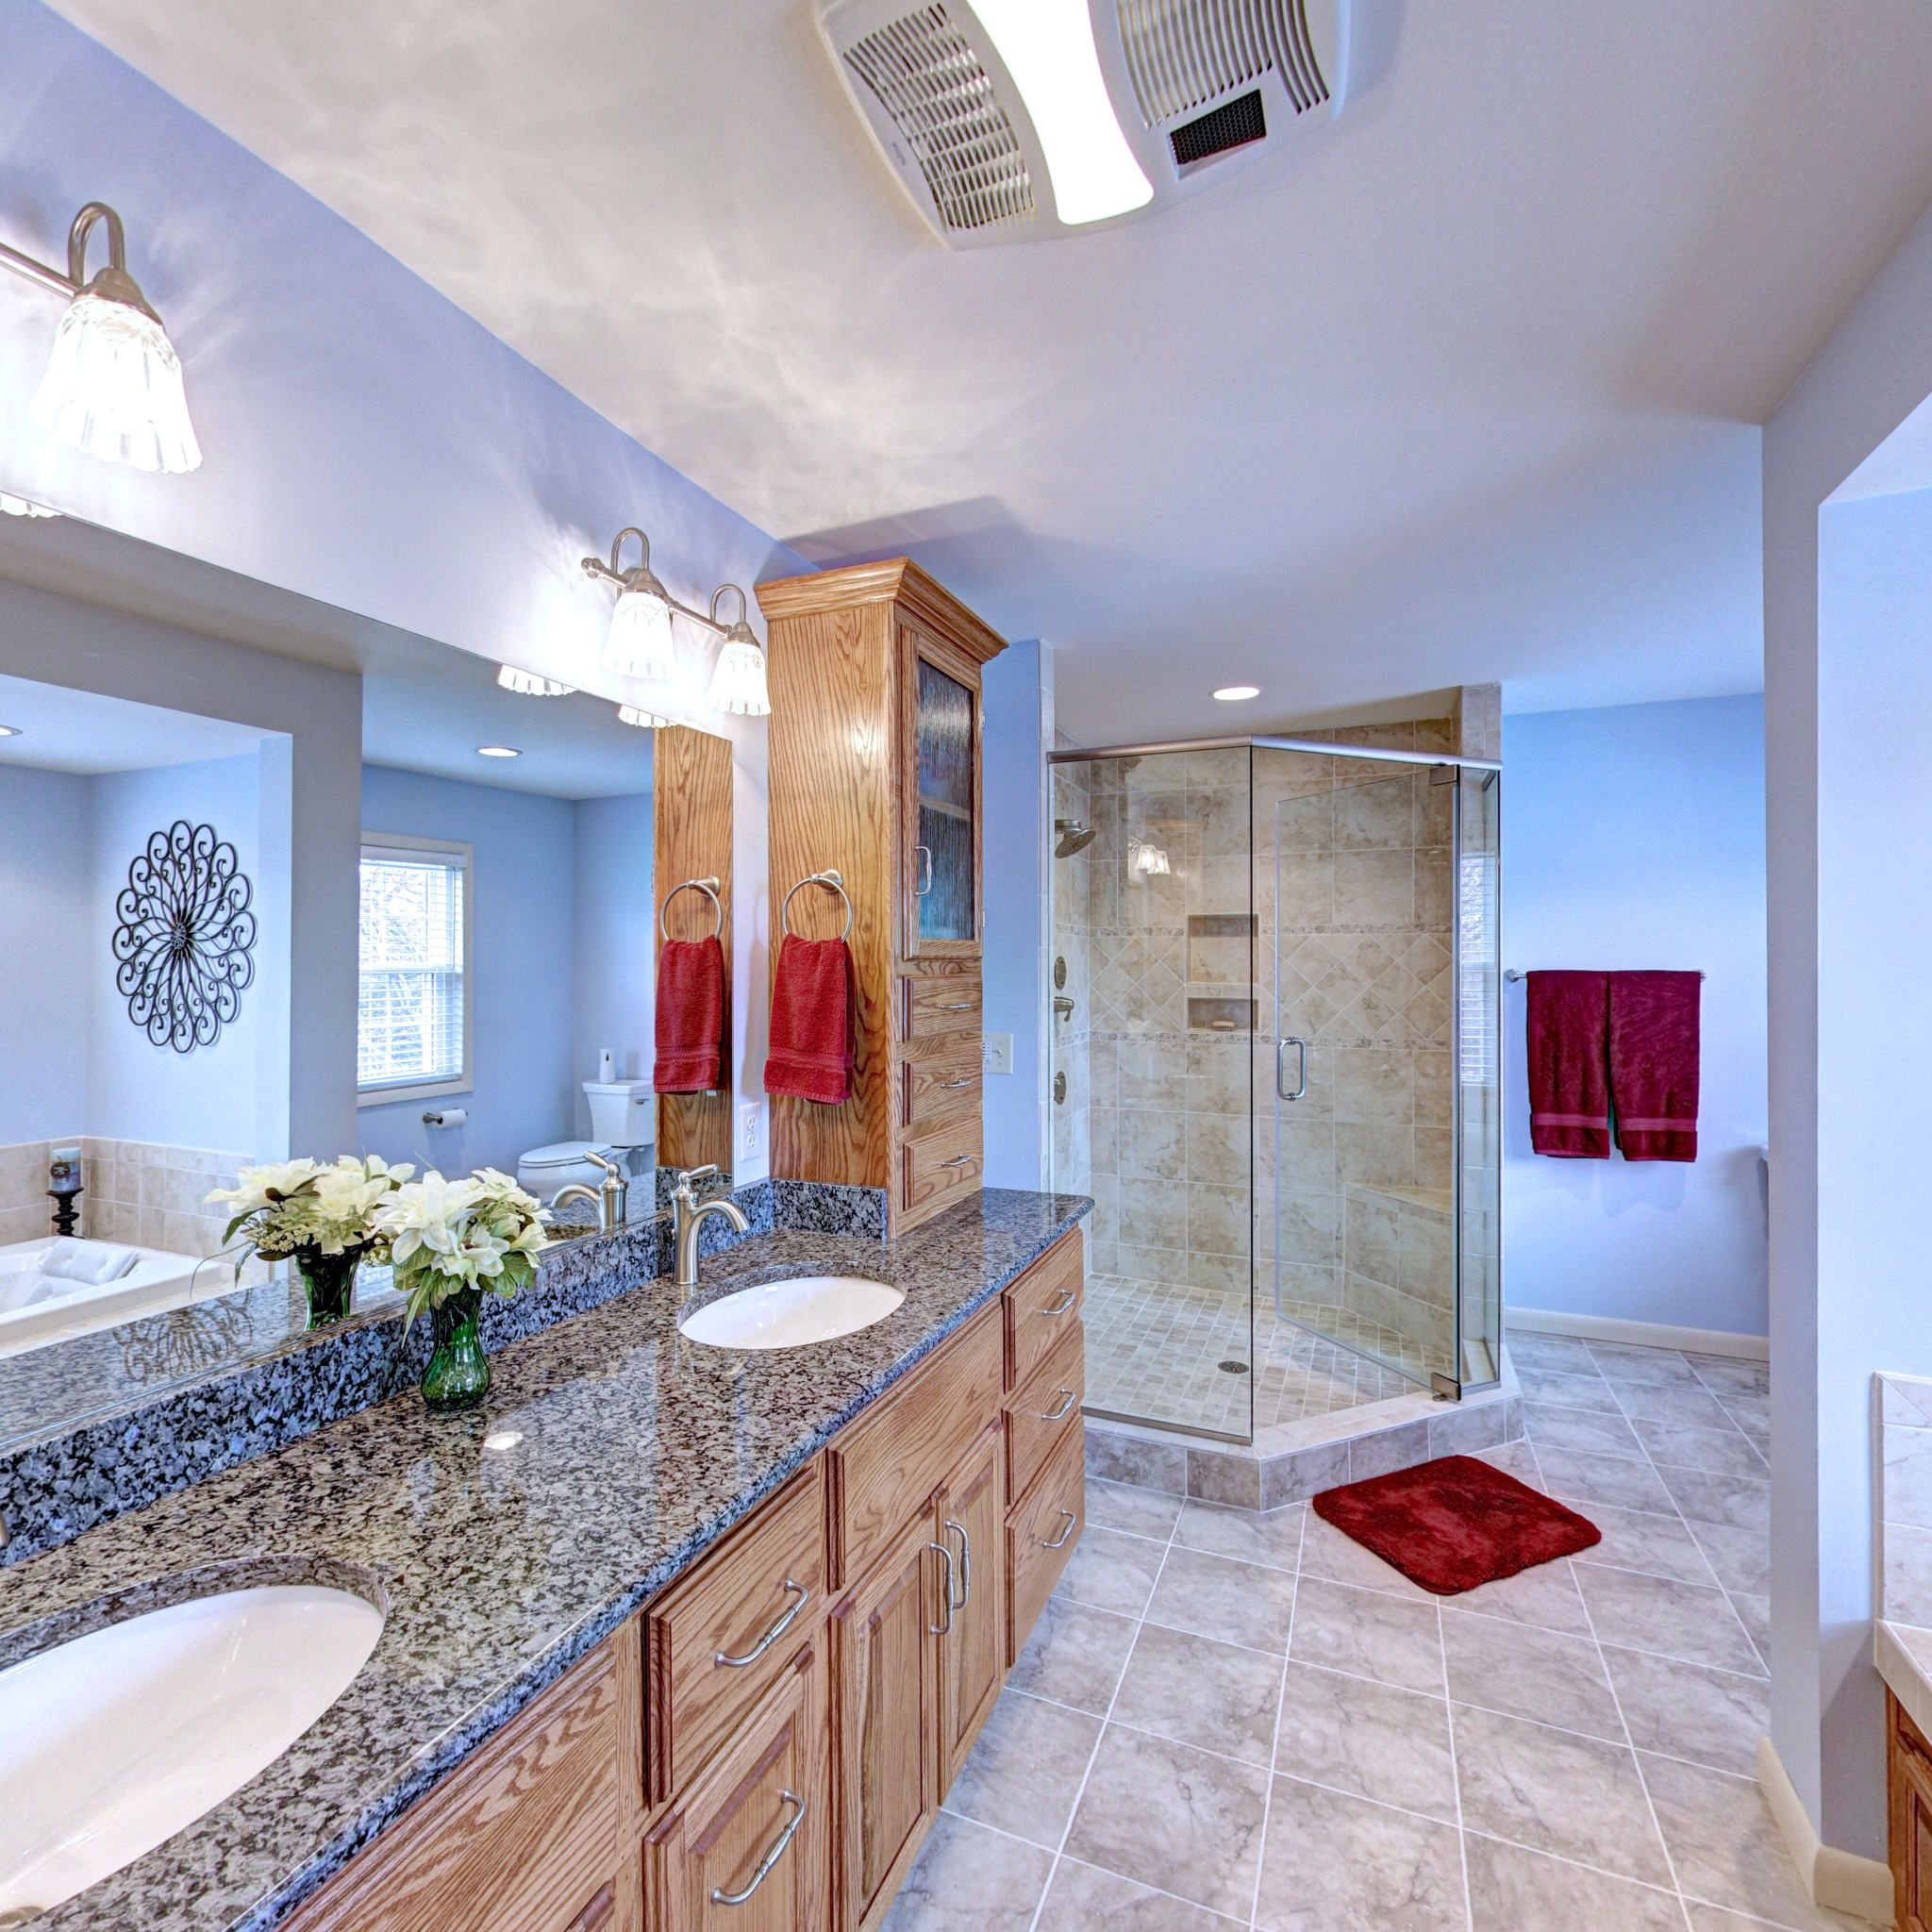 Kitchen And Bathroom Remodeling Contractors: #remodel #remodeling #builders #construction